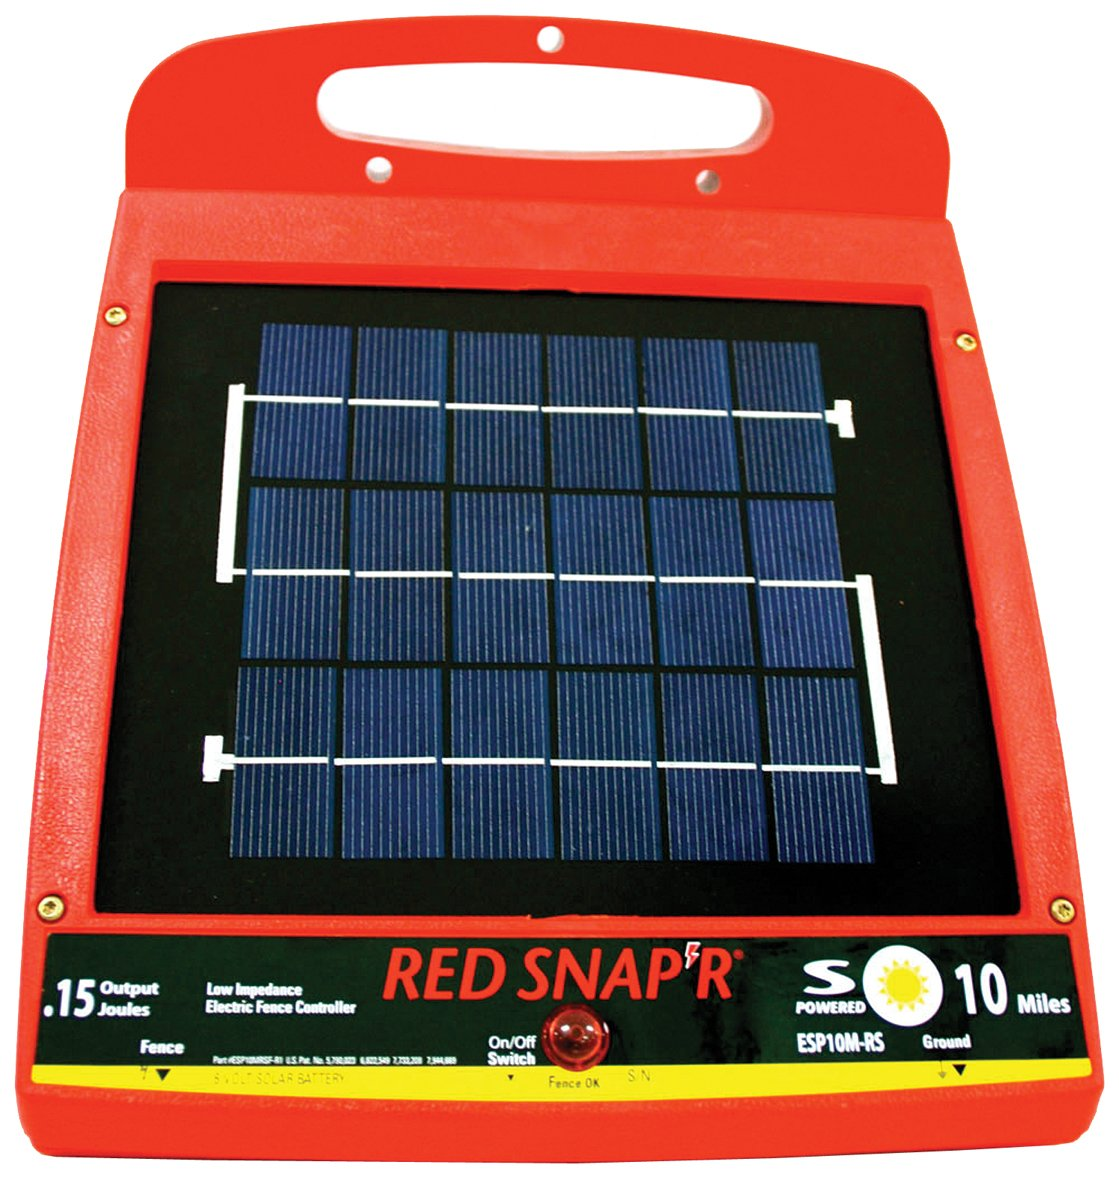 Amazon red snapr esp10m rs 10 mile solar low impedance fence amazon red snapr esp10m rs 10 mile solar low impedance fence charger zareba garden outdoor sciox Choice Image